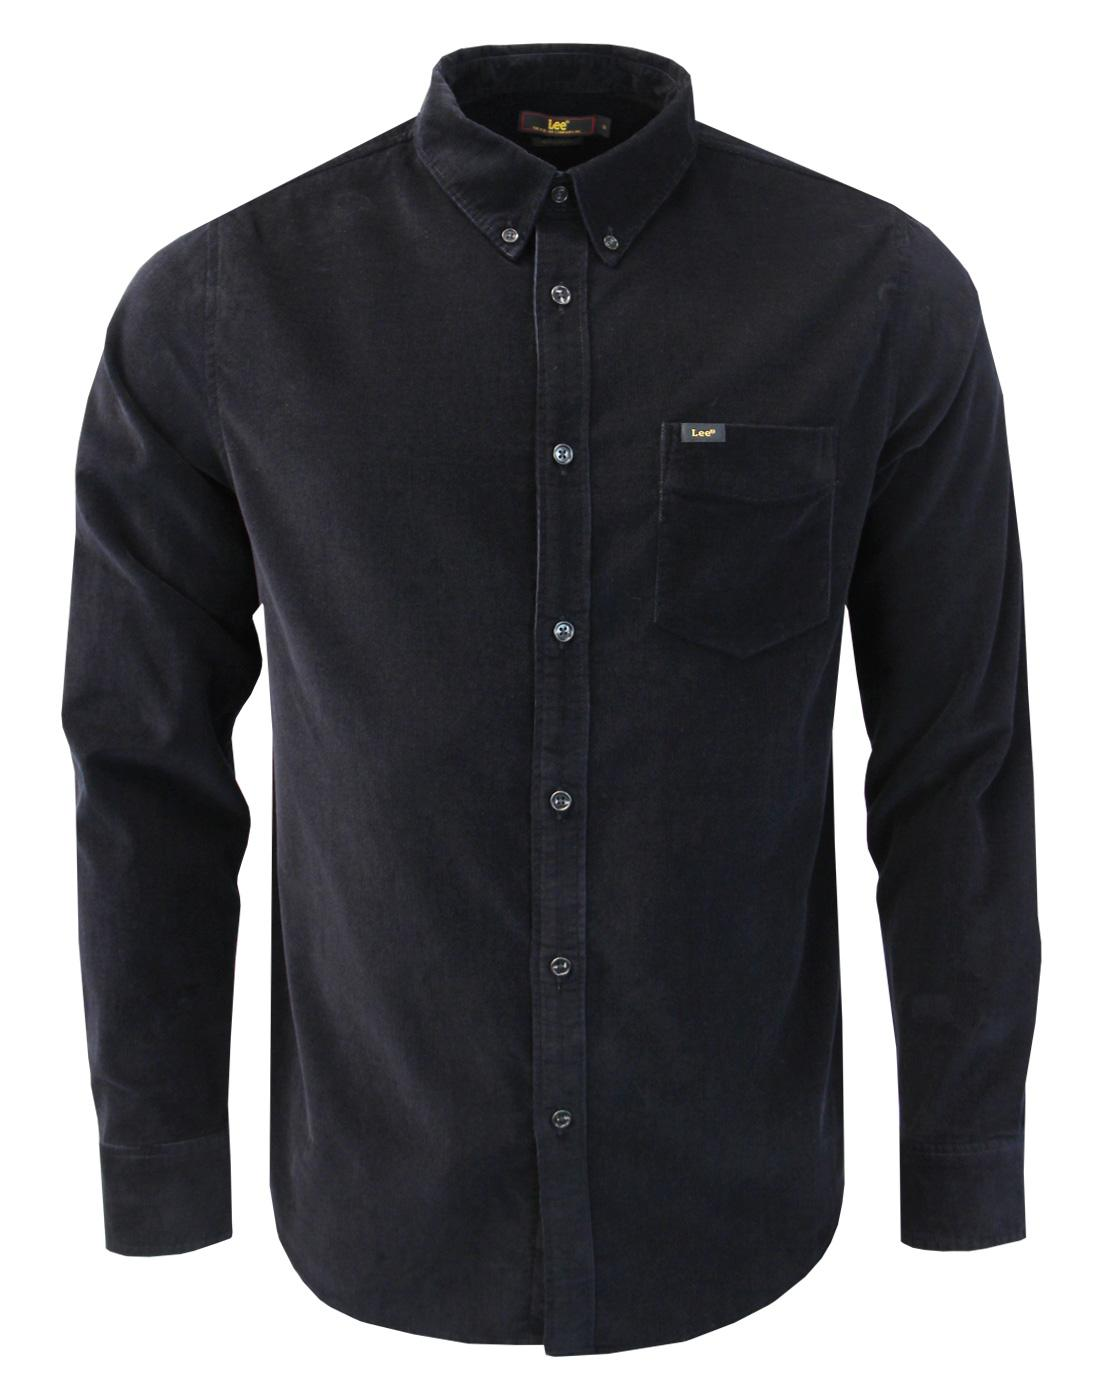 5a177700bf LEE Men s Retro 1960s Mod Fine Cord Button Down Shirt in Black